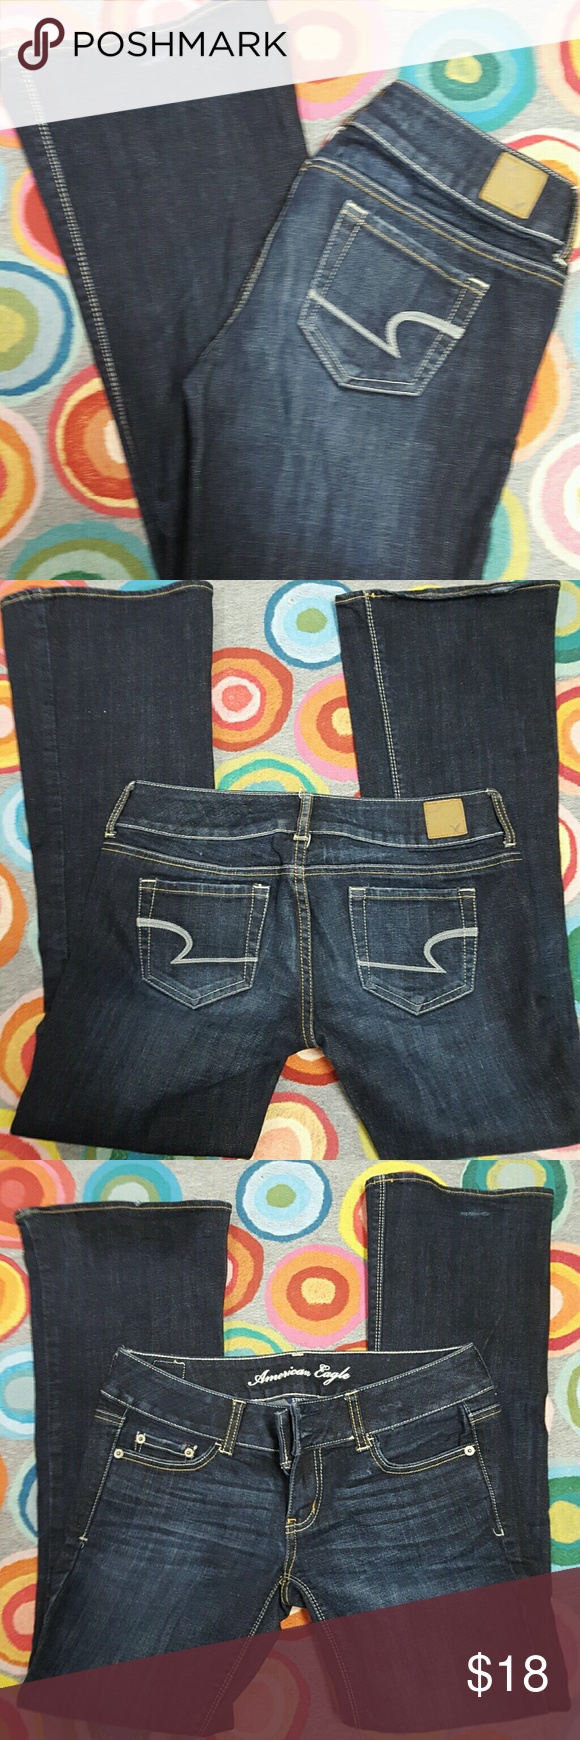 AMERICAN EAGLE JEANS. Straight leg with boot cut AMERICAN EAGLE JEANS. Straight leg with slight boot cut. Great condition! 36.5 length. 28.5 inseam. Size 4. Has some stretch. American Eagle Outfitters Jeans Boot Cut